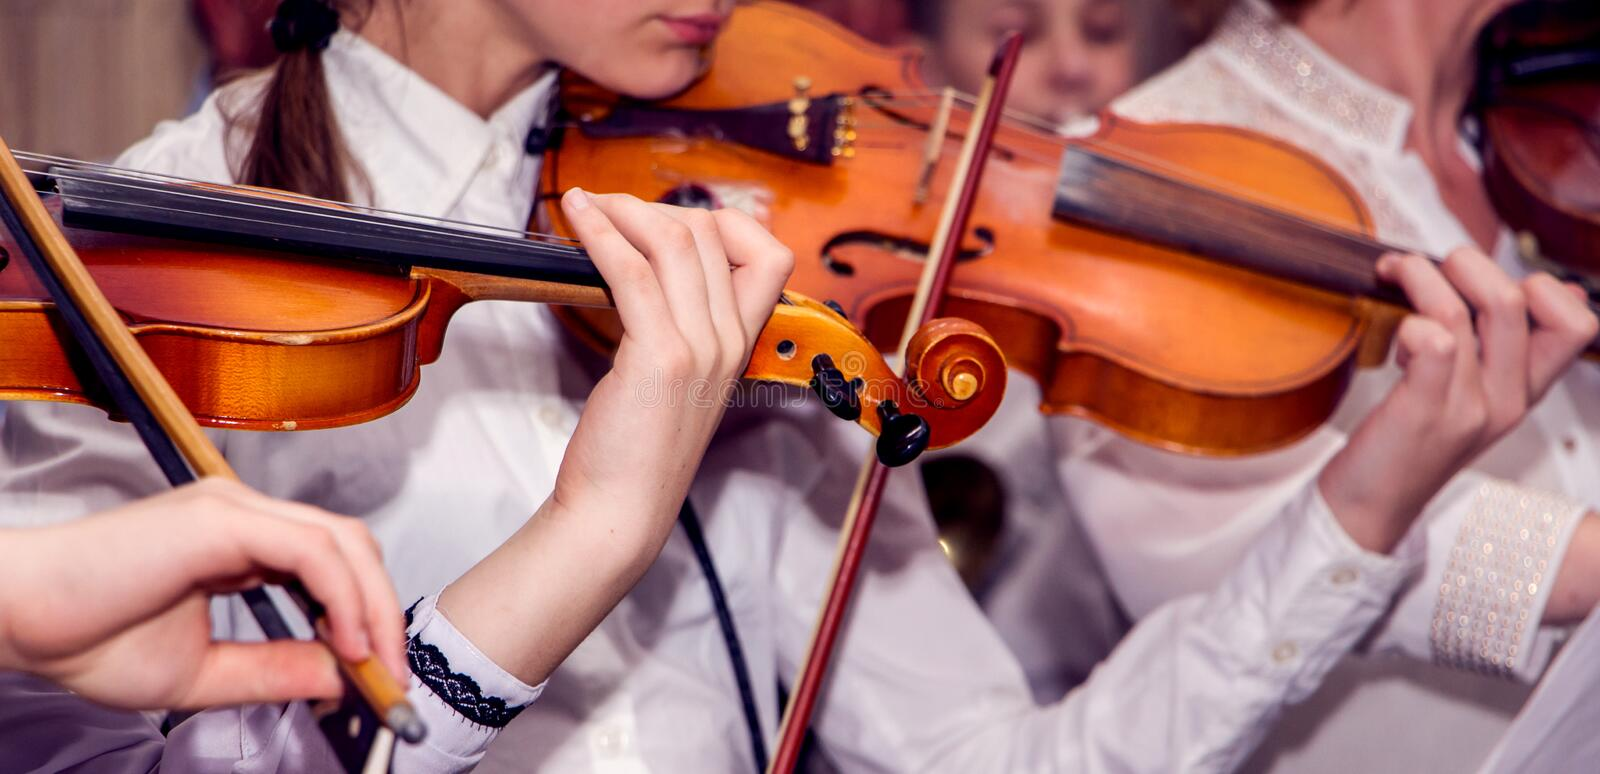 Children play violins during the concert. Performing Classical Music on Violins_. Children play violins during the concert. Performing Classical Music on Violins royalty free stock images